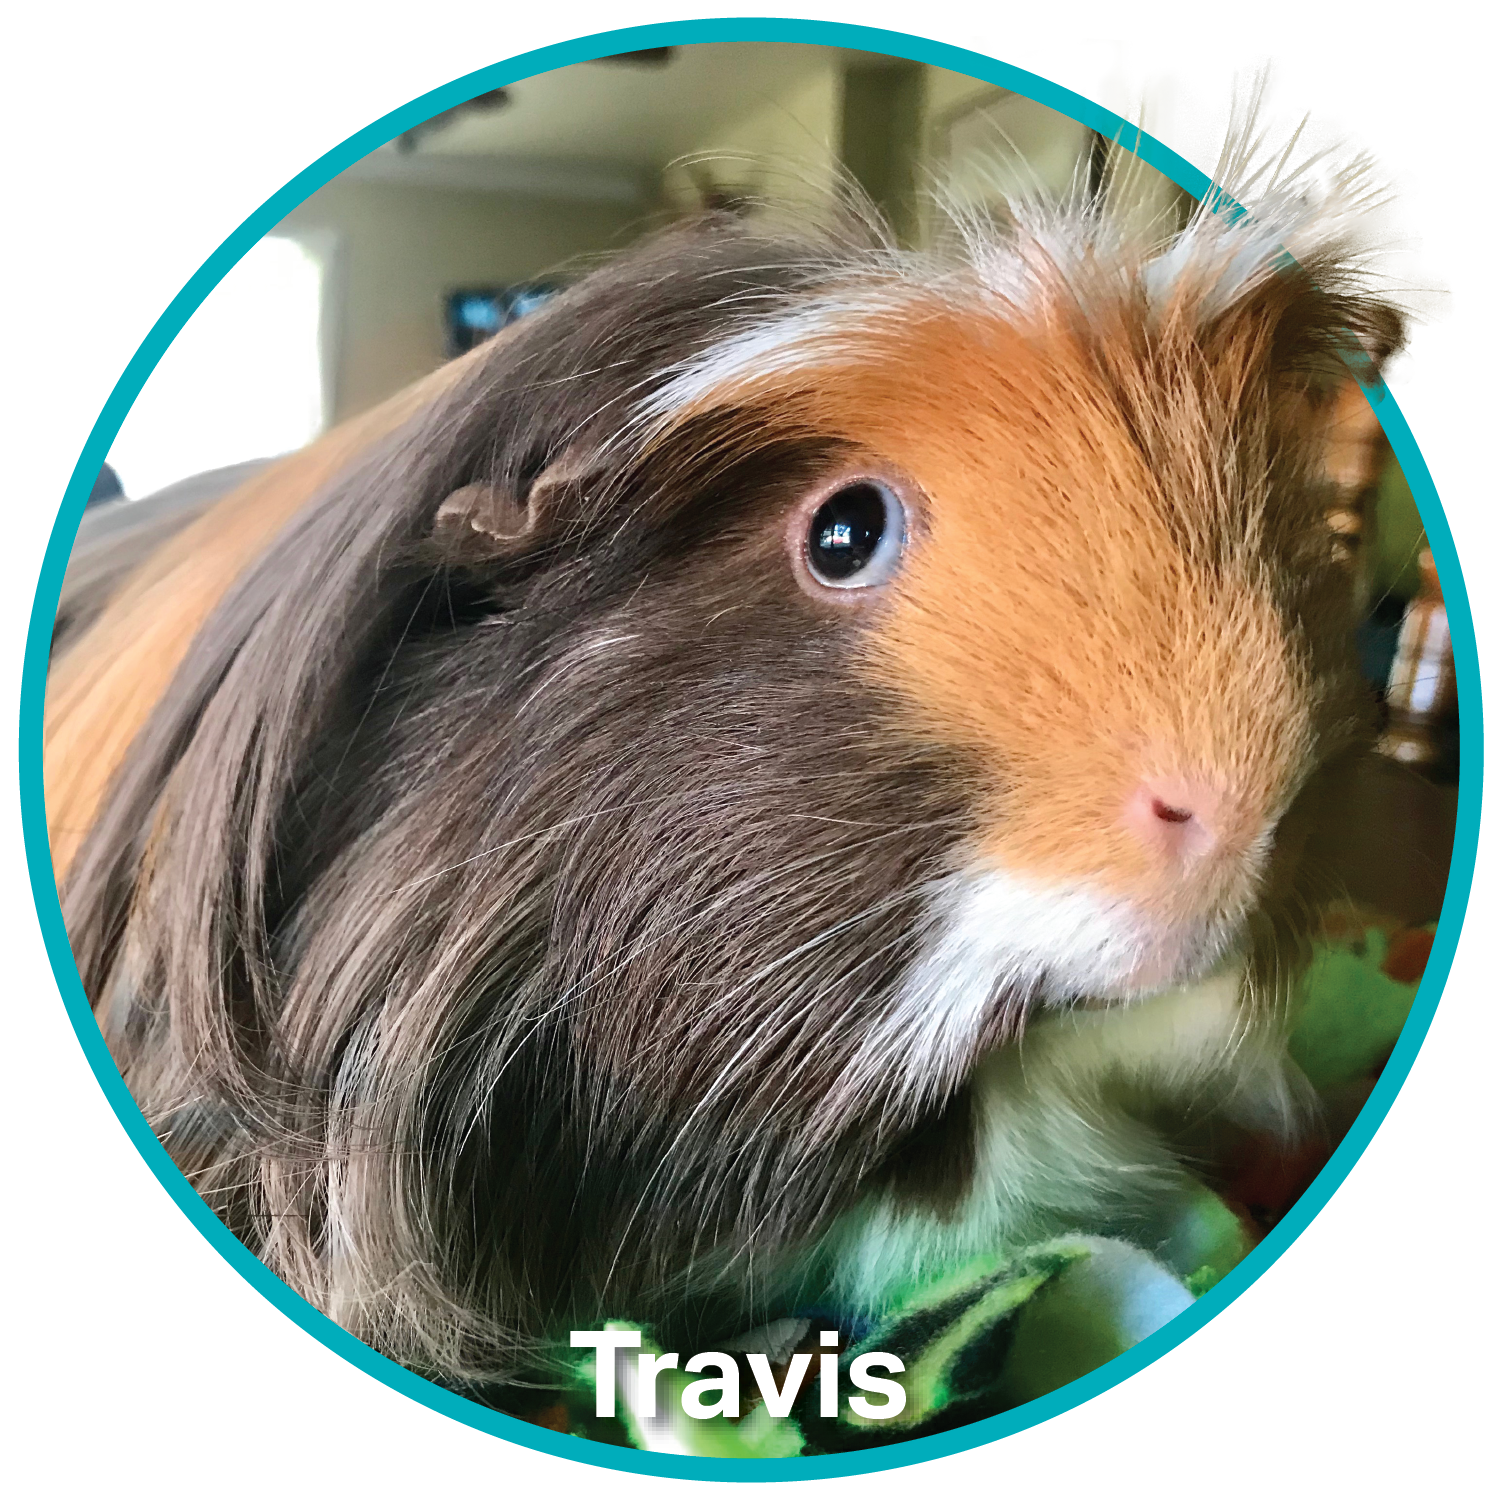 Travis-Spokespet-Cricle.png